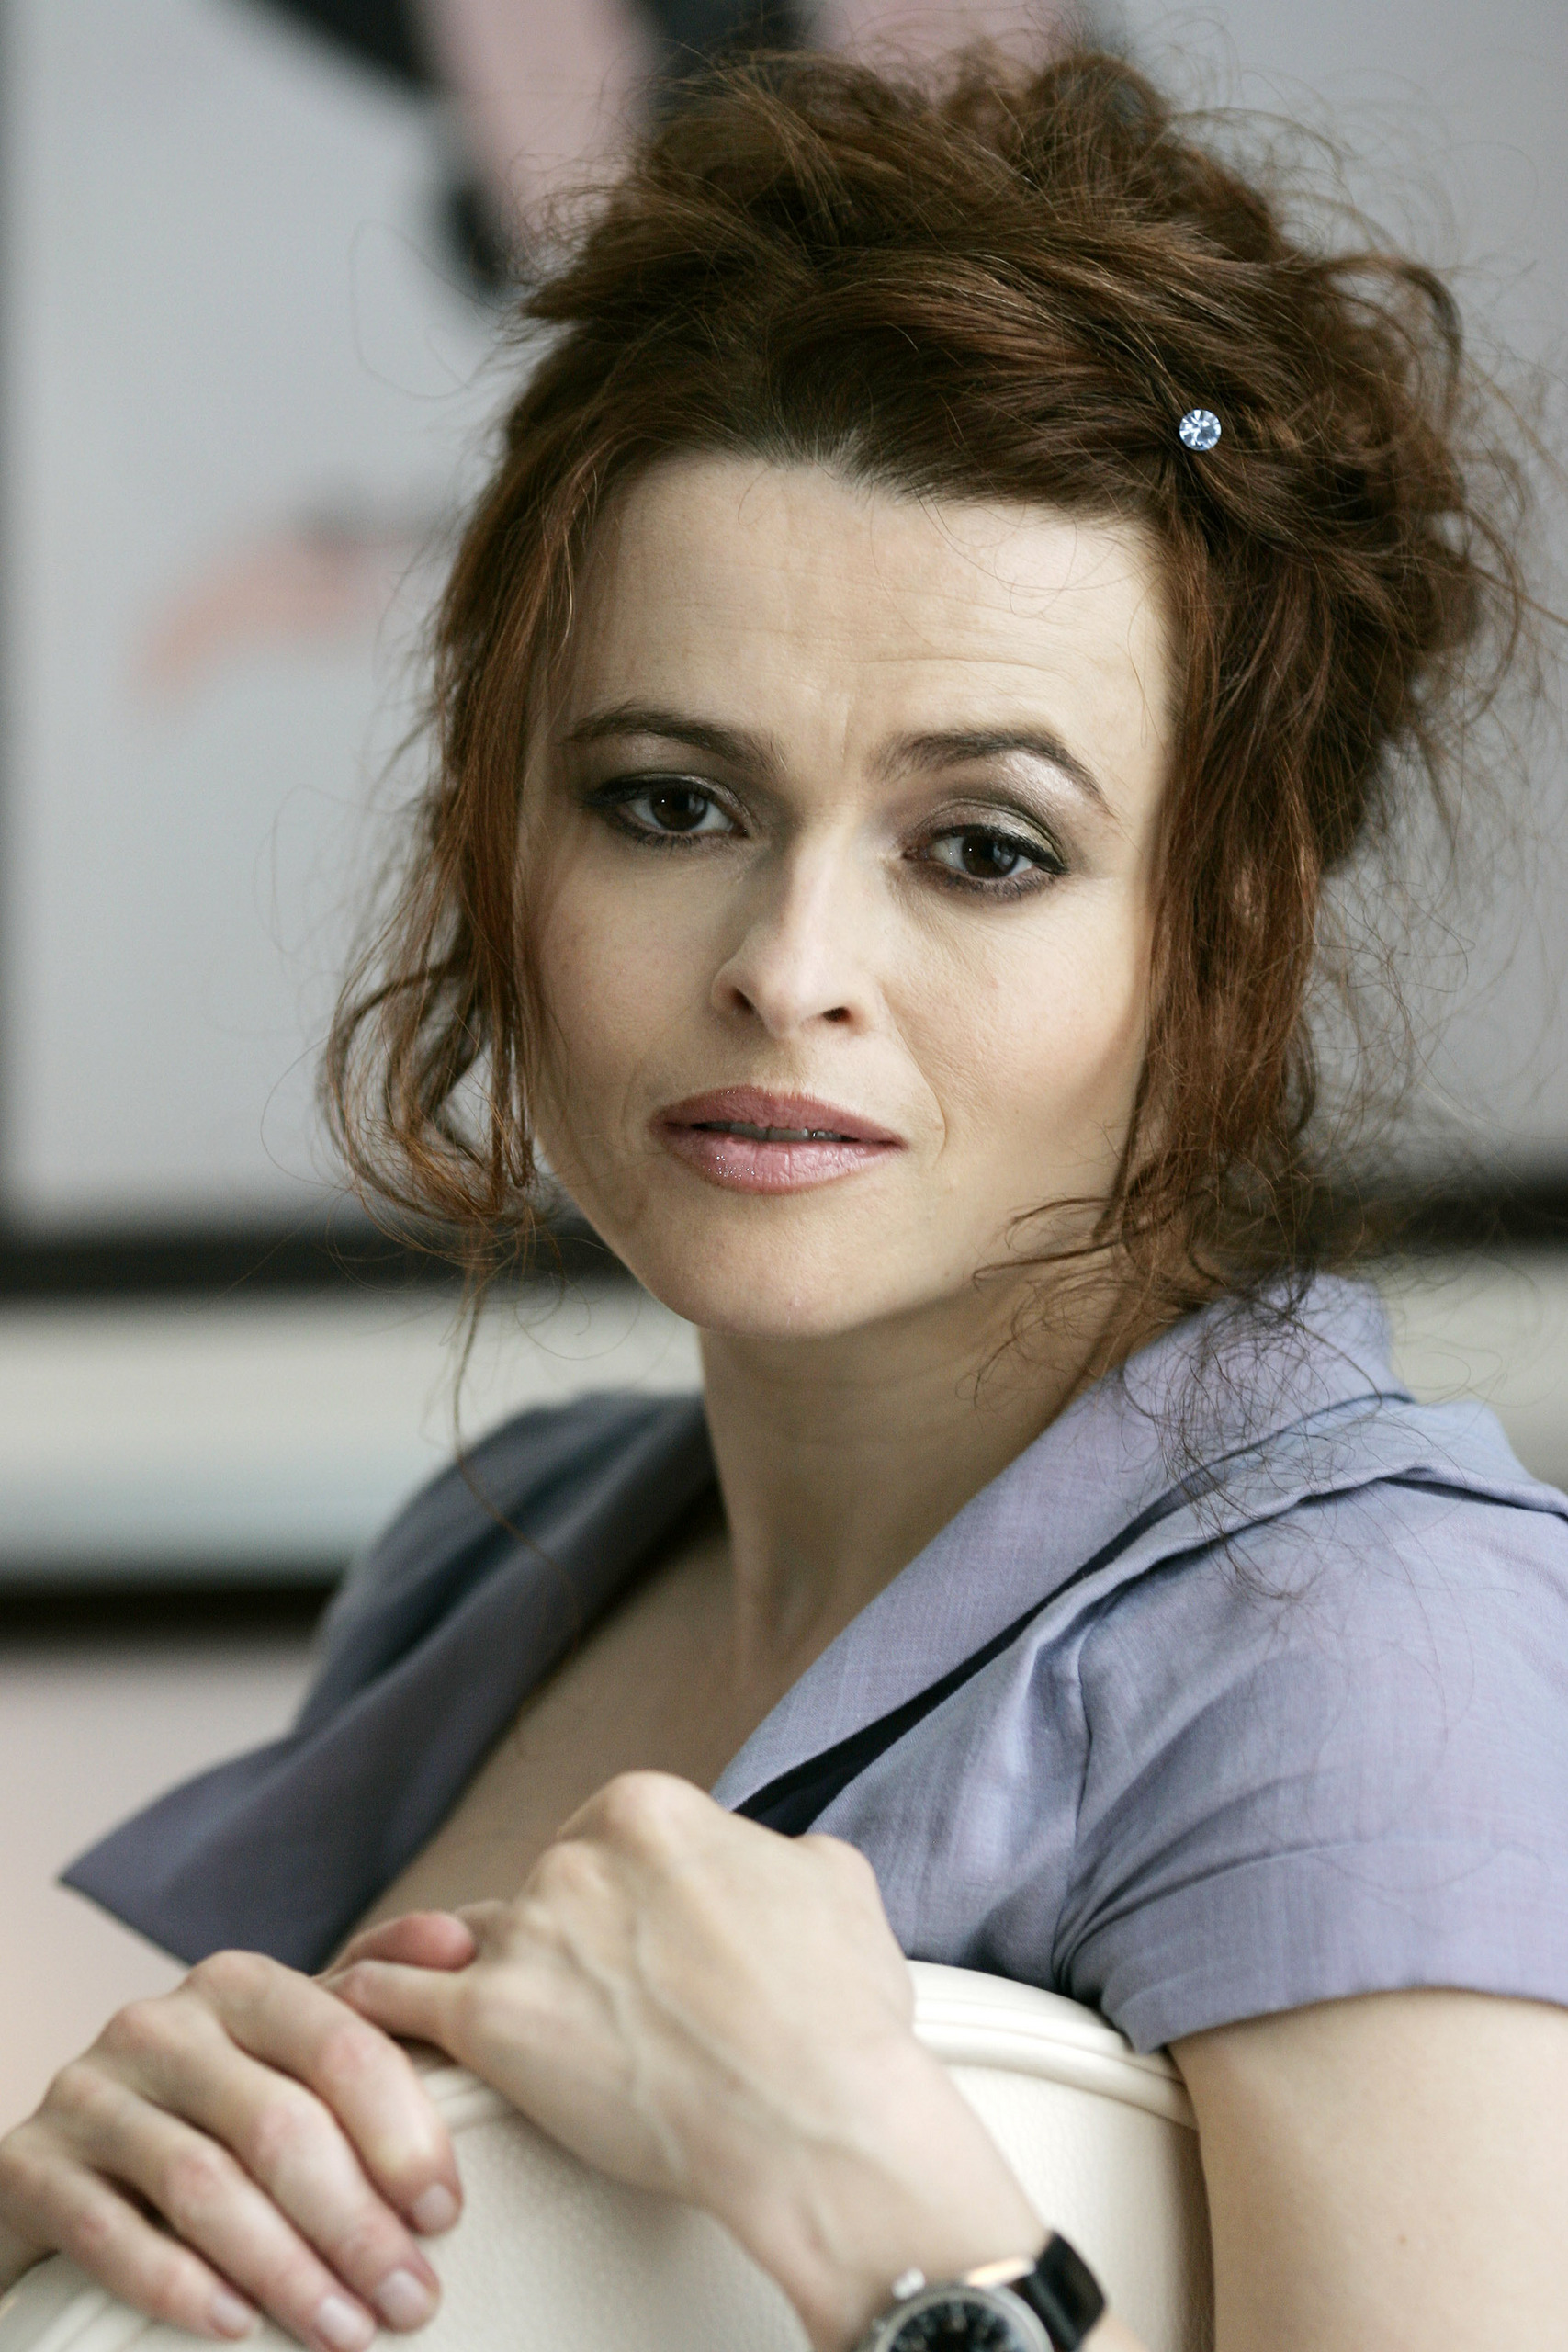 HBC photos - helena-bonham-carter Photo - HBC-photos-helena-bonham-carter-7641219-1707-2560